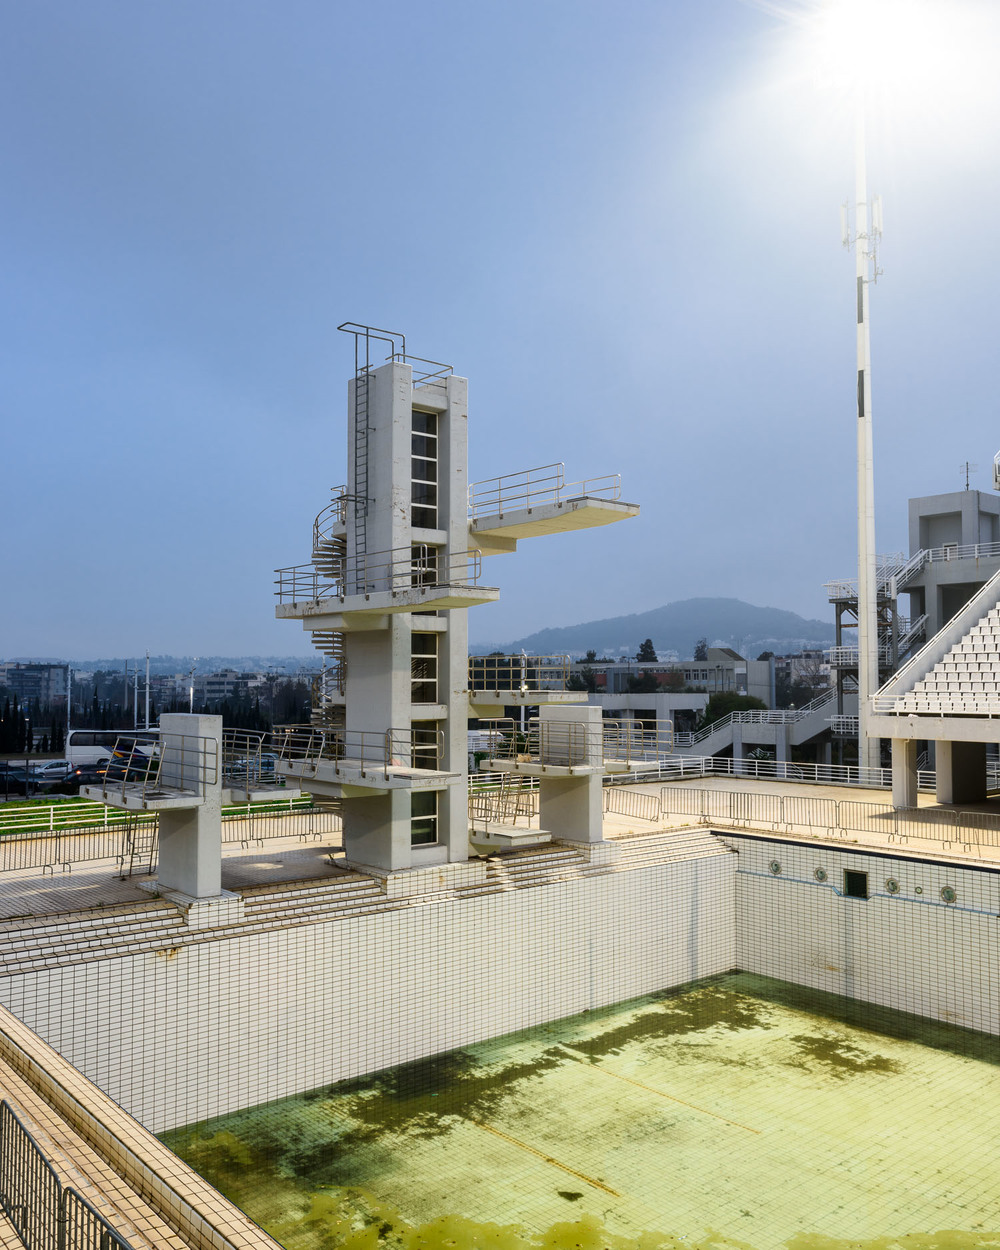 2004 Olympic Outdoor Diving Pool, Athens